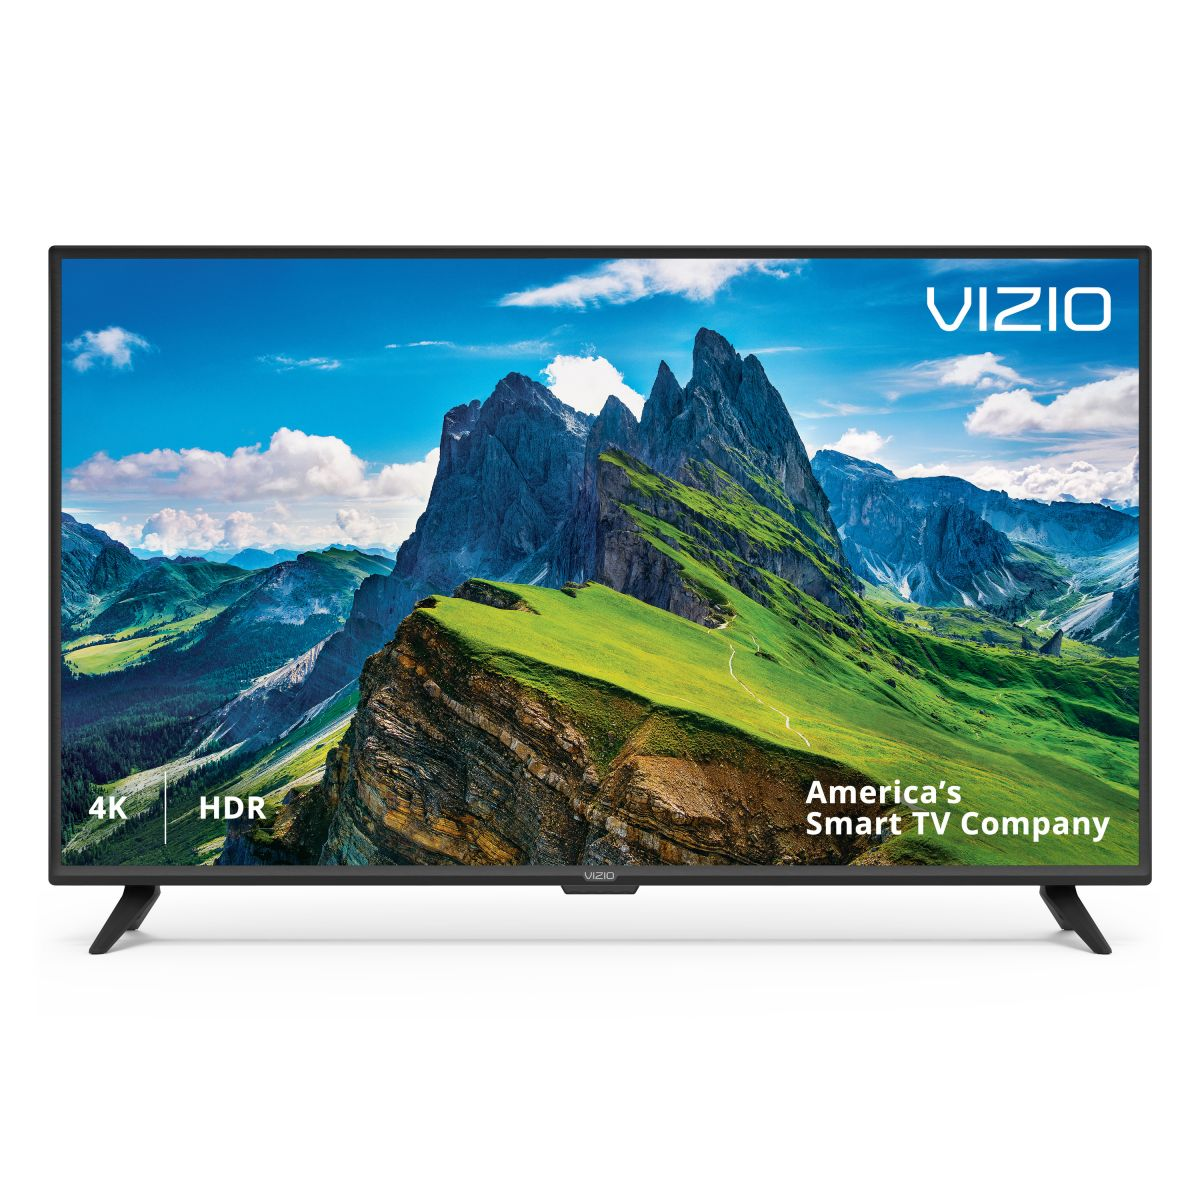 Samsung Flat Screen Tv Price The Best Cheap 4k Tv Deals And Sale Prices In The Us April 2019